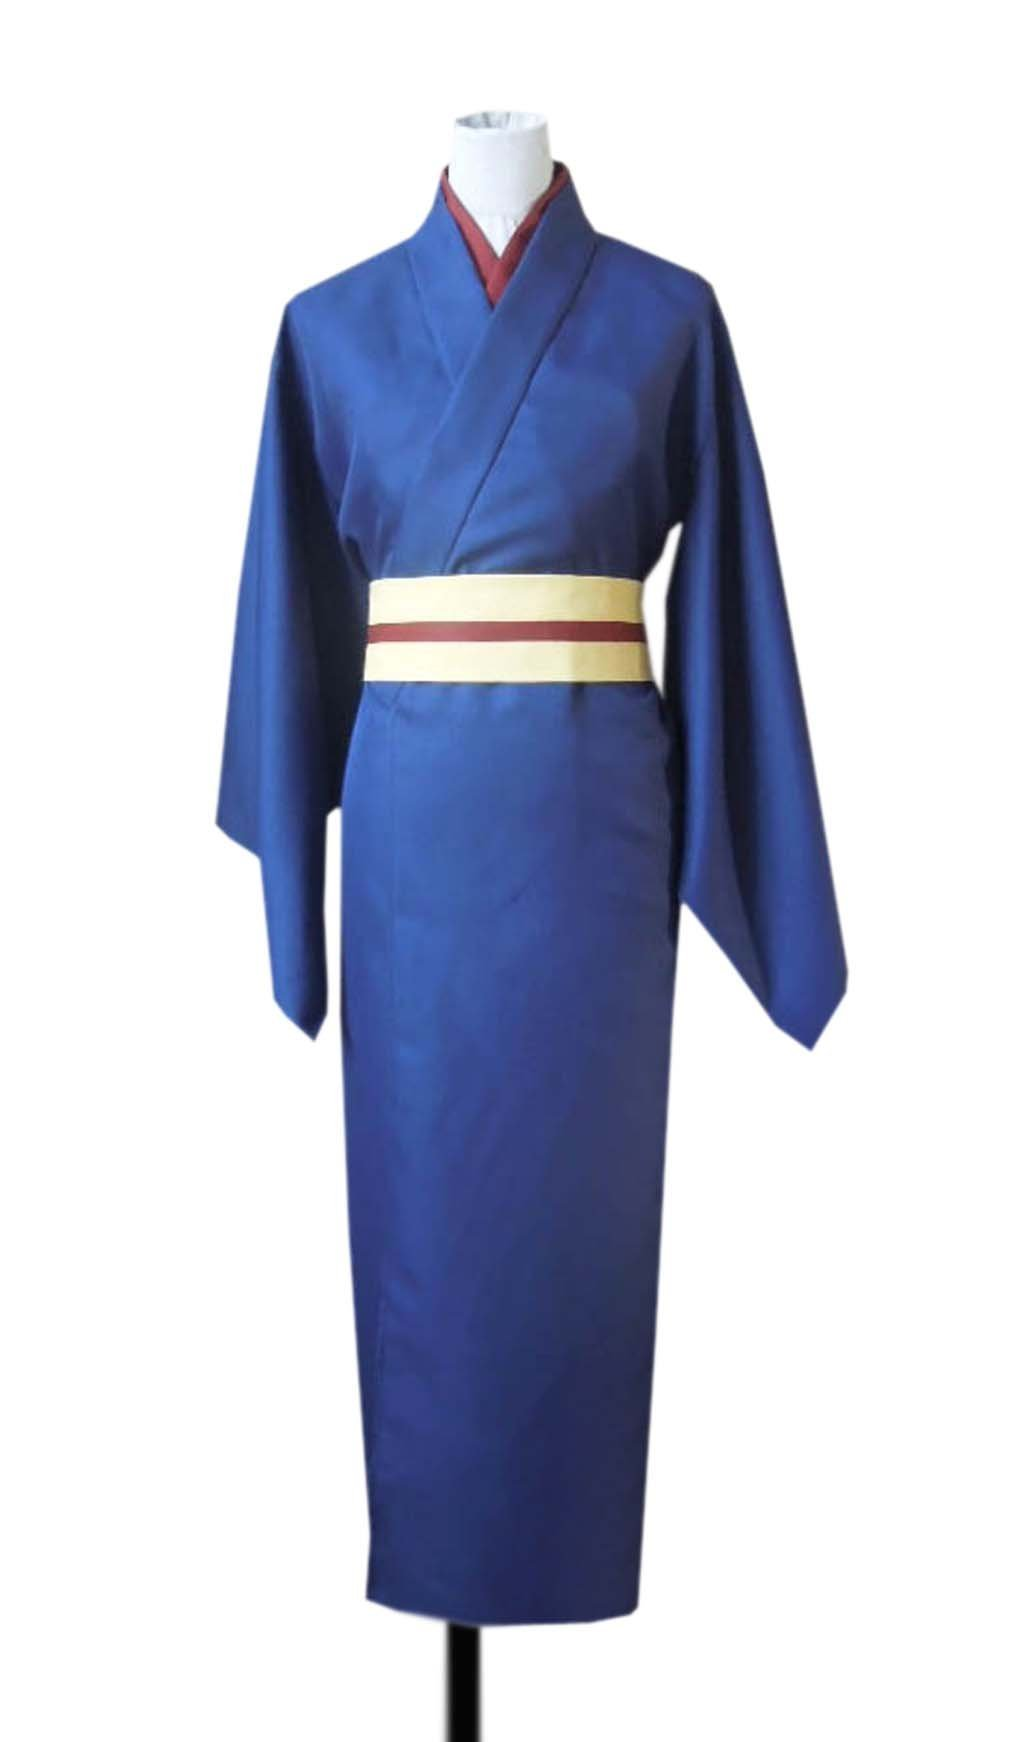 Dreamcosplay Kamisama Love Tomoe Blue Uniform Anime Outfits Cosplay